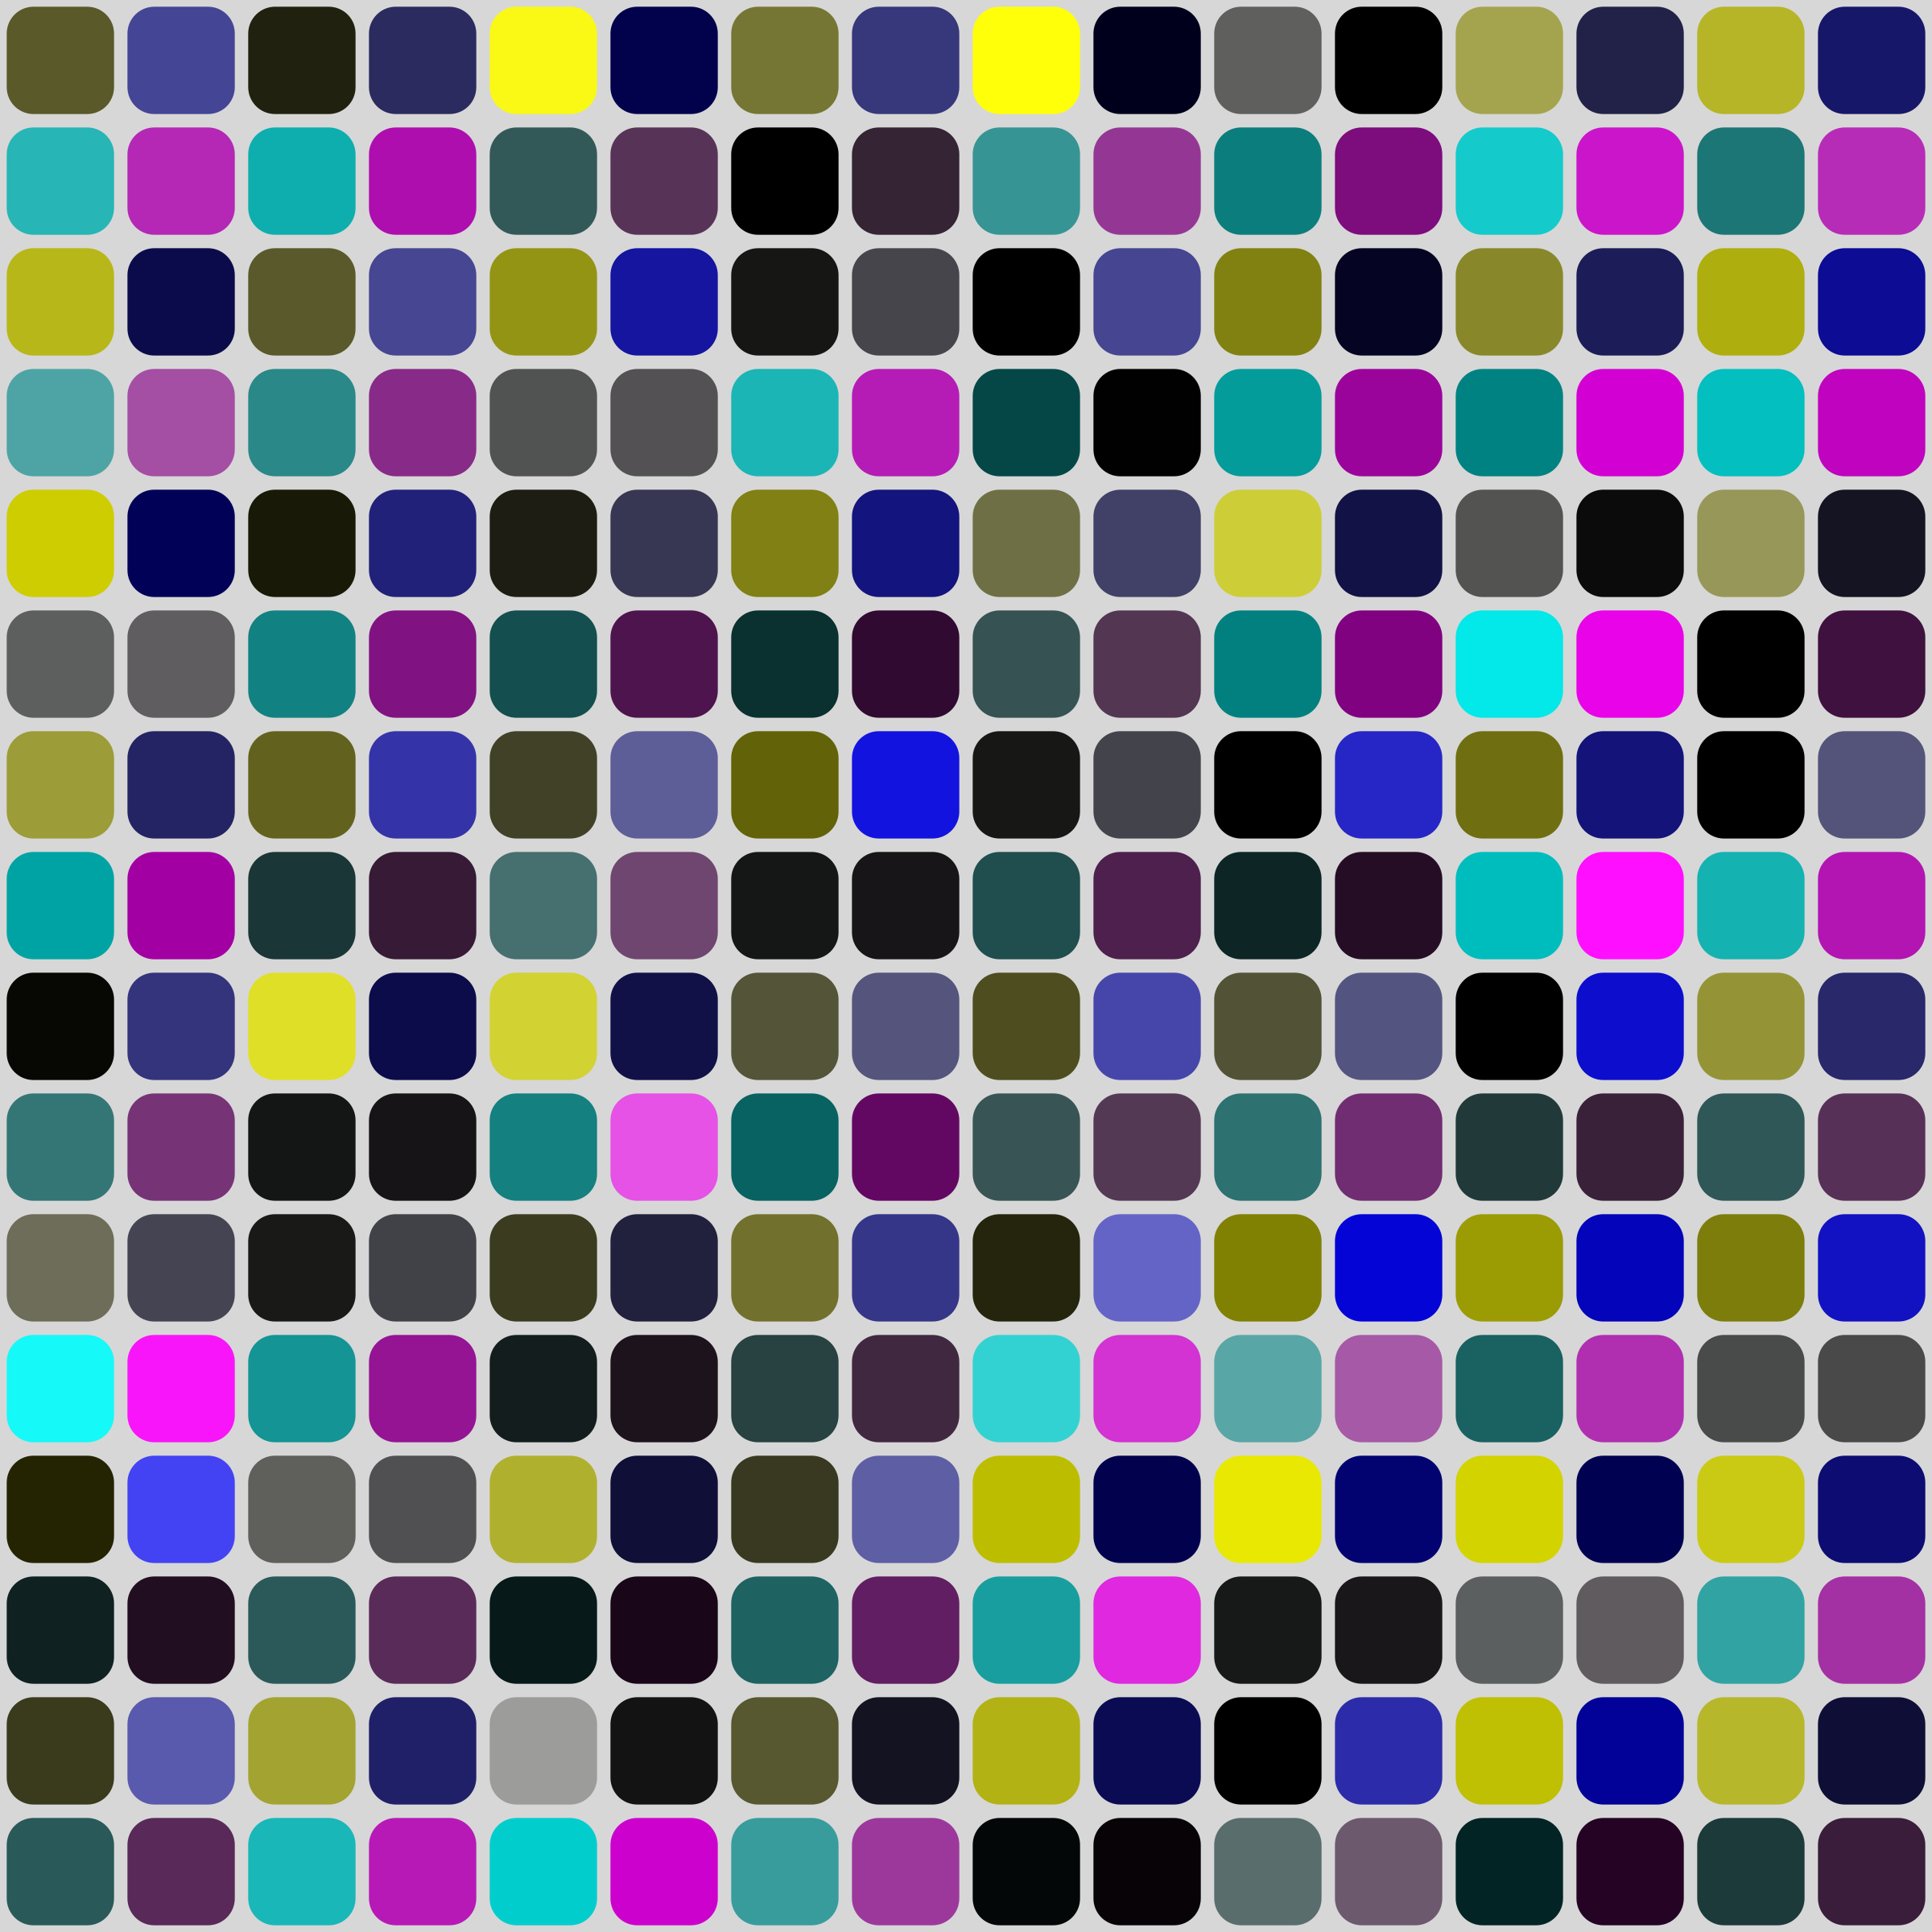 Background pattern 243 (colour 2) by Firkin